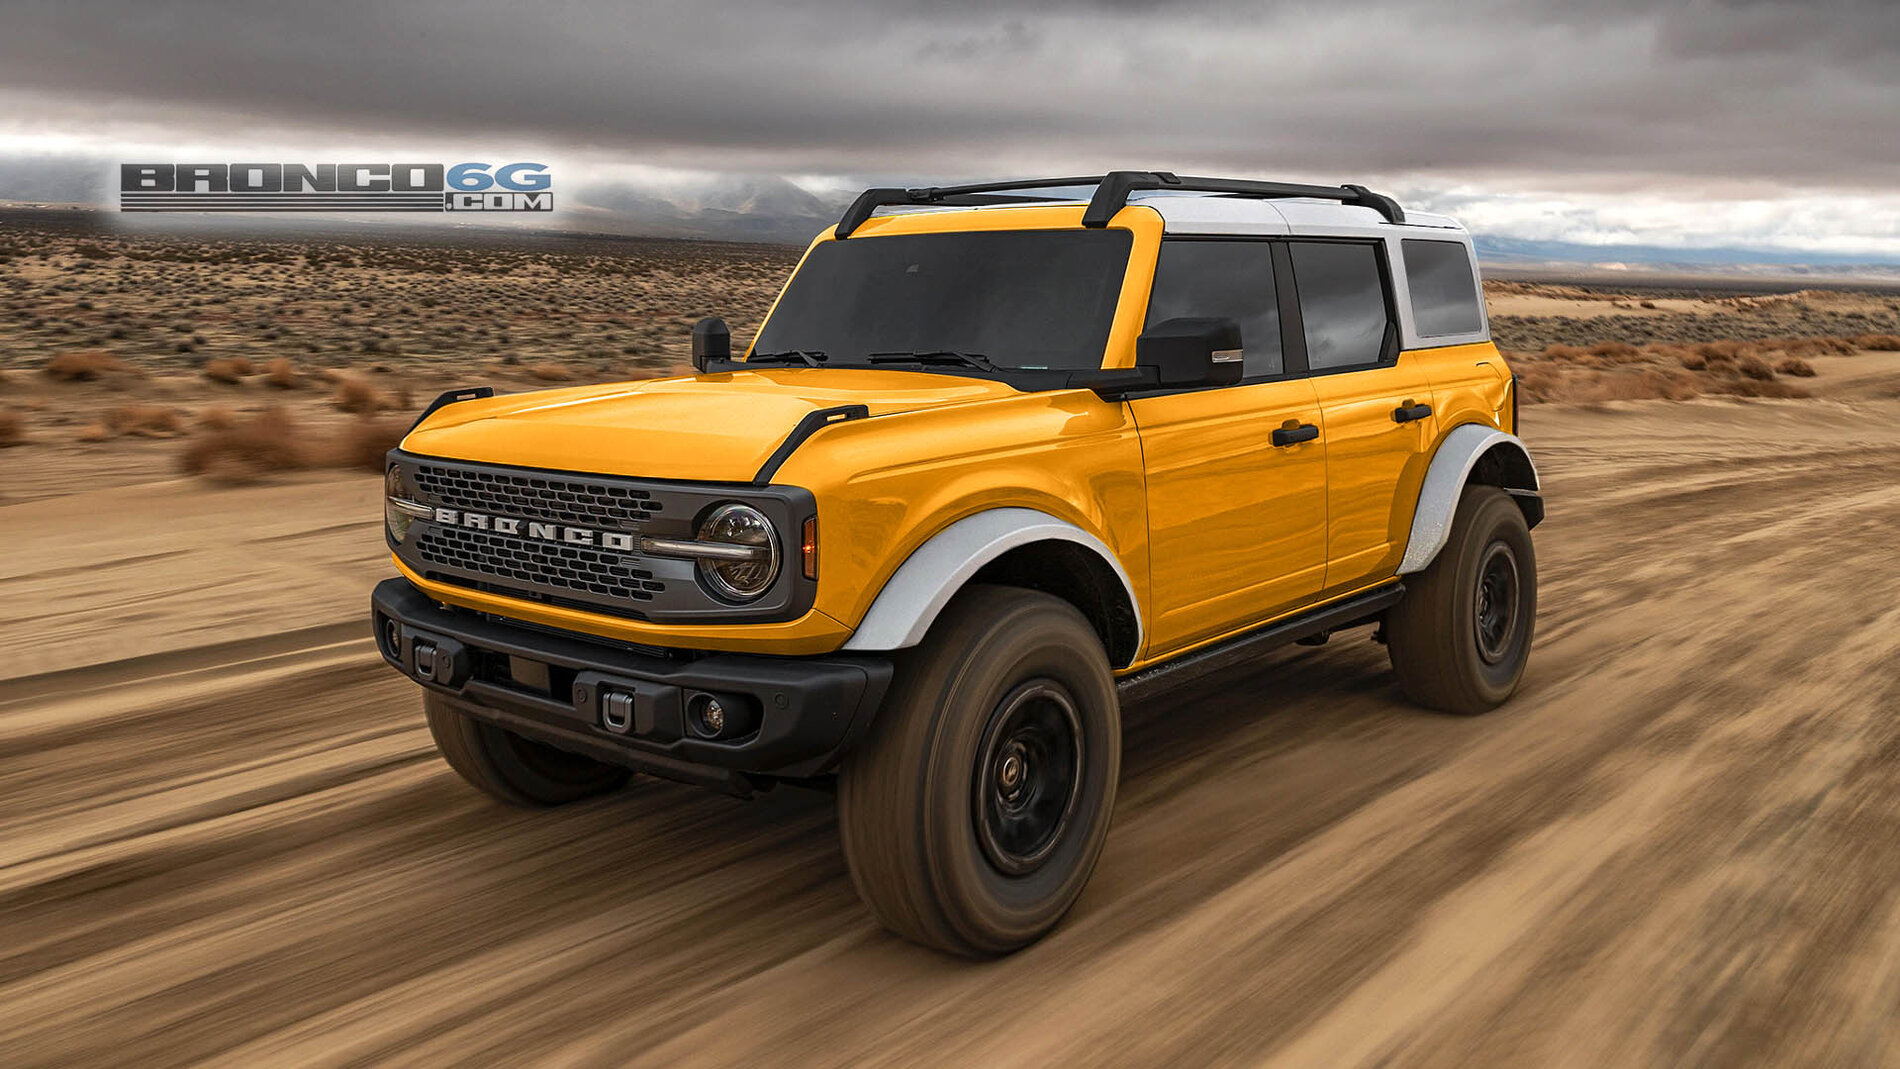 2021 Ford Bronco Sasquatch Cyber-Orange-white-roof-fendersBronco6G.com.jpg